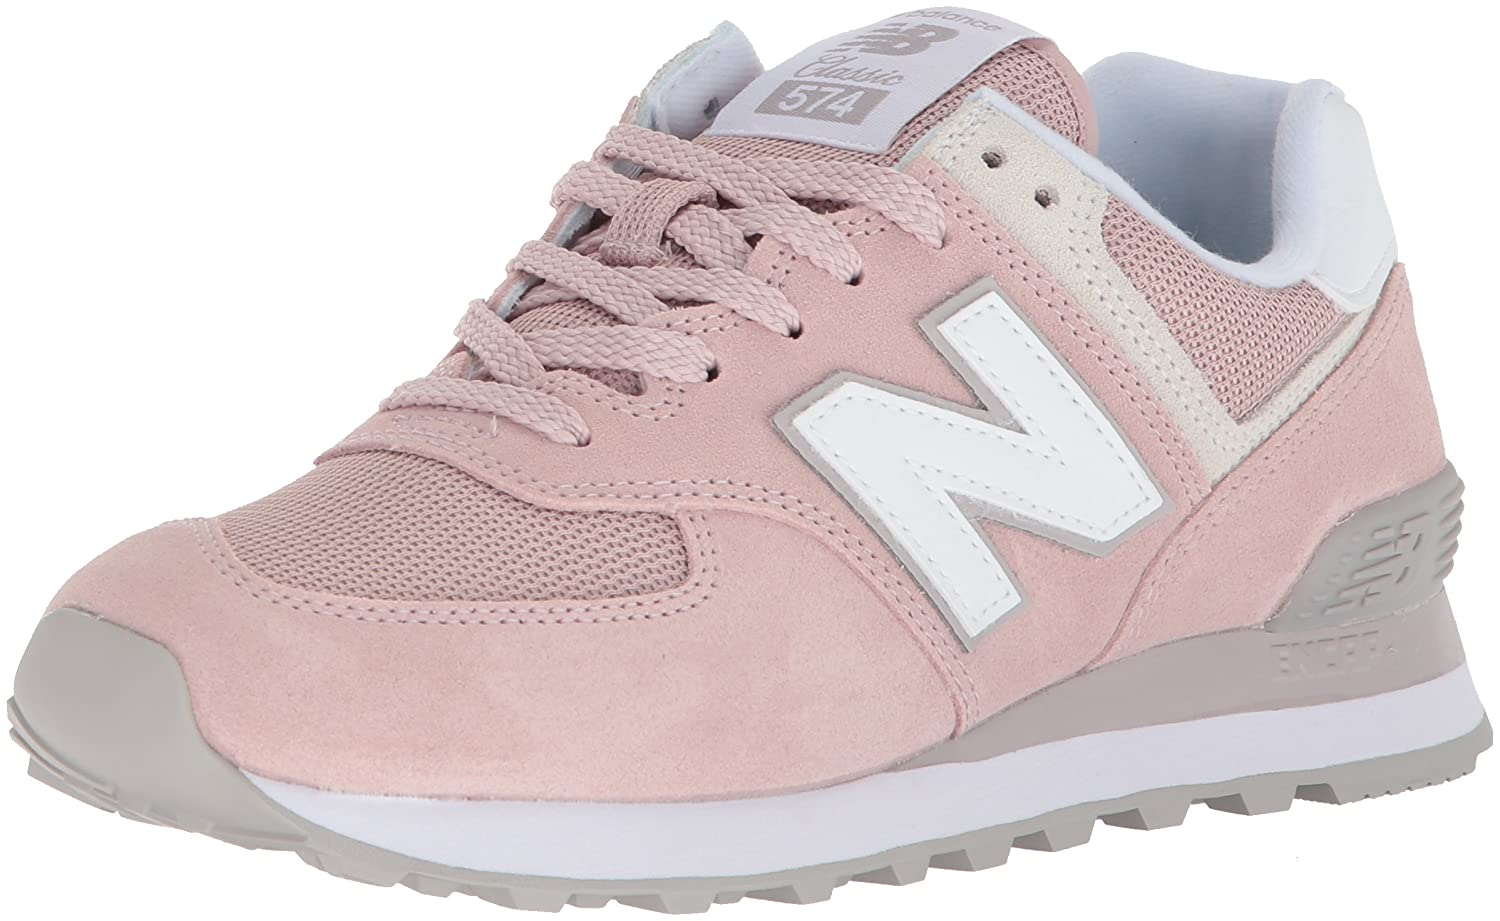 New Balance Women's 574v2 Sneaker B071P9B8ZJ 9.5 D US|Faded Rose/Overcast